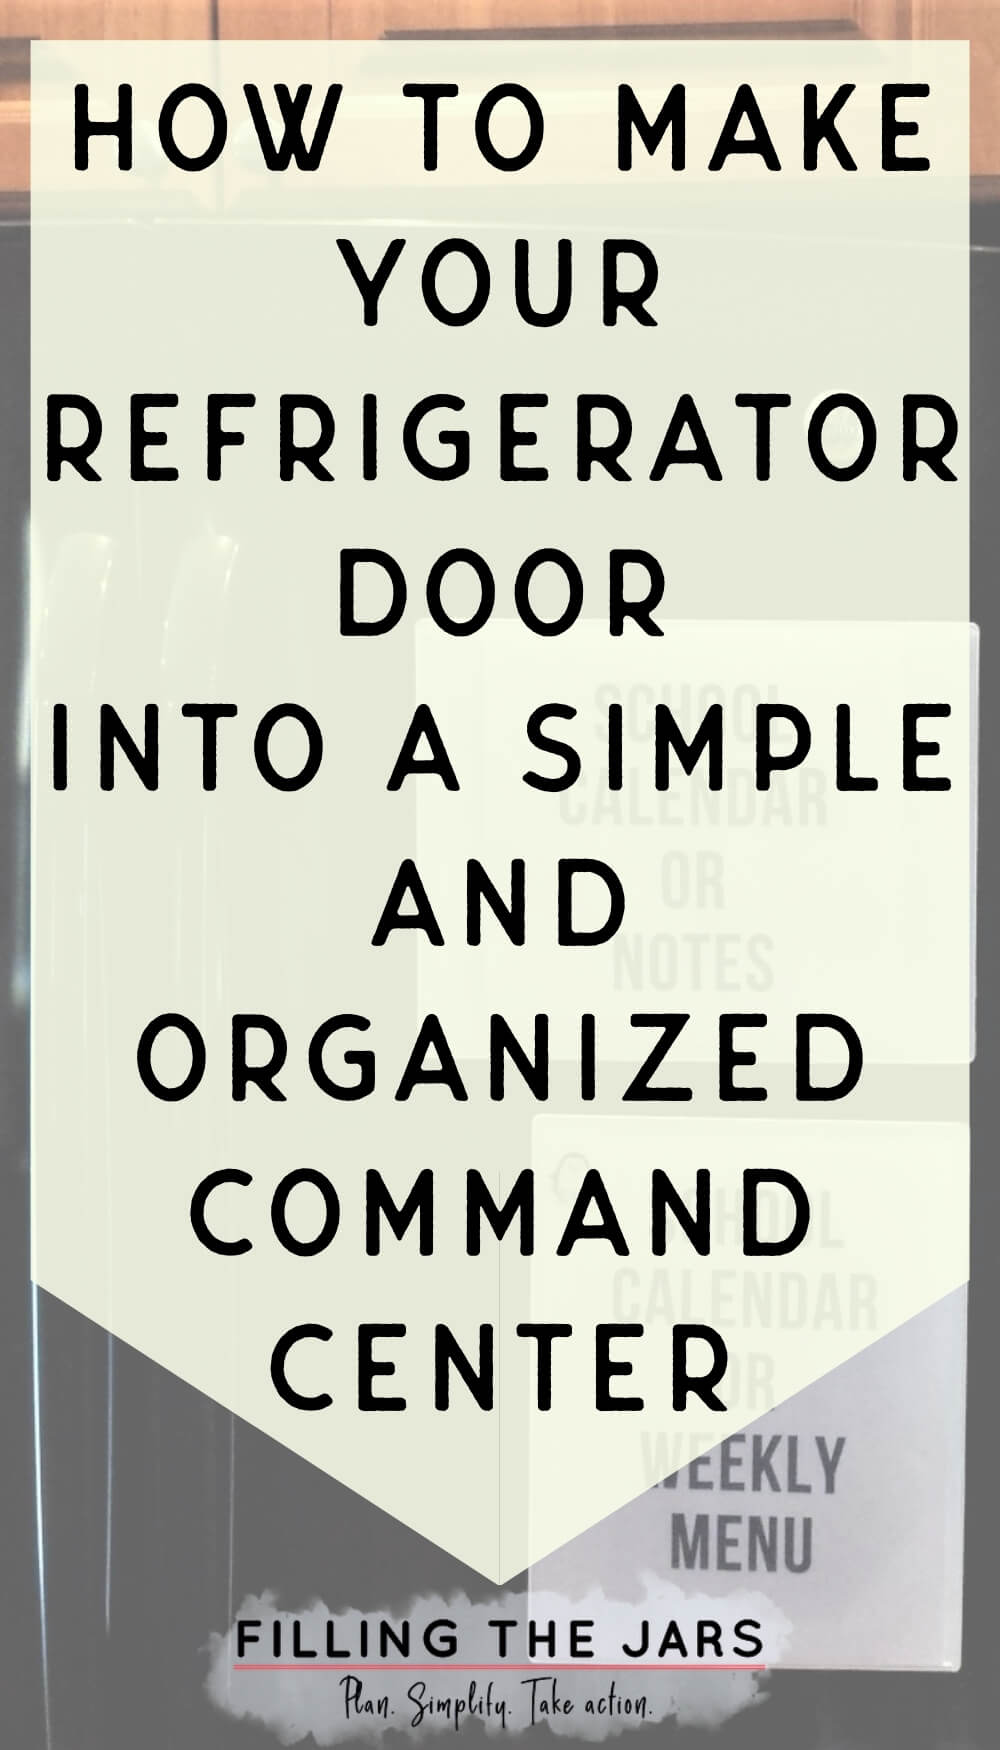 Text how to make your refrigerator door into a simple and organized command center on off-white background over image of fridge command center layout.